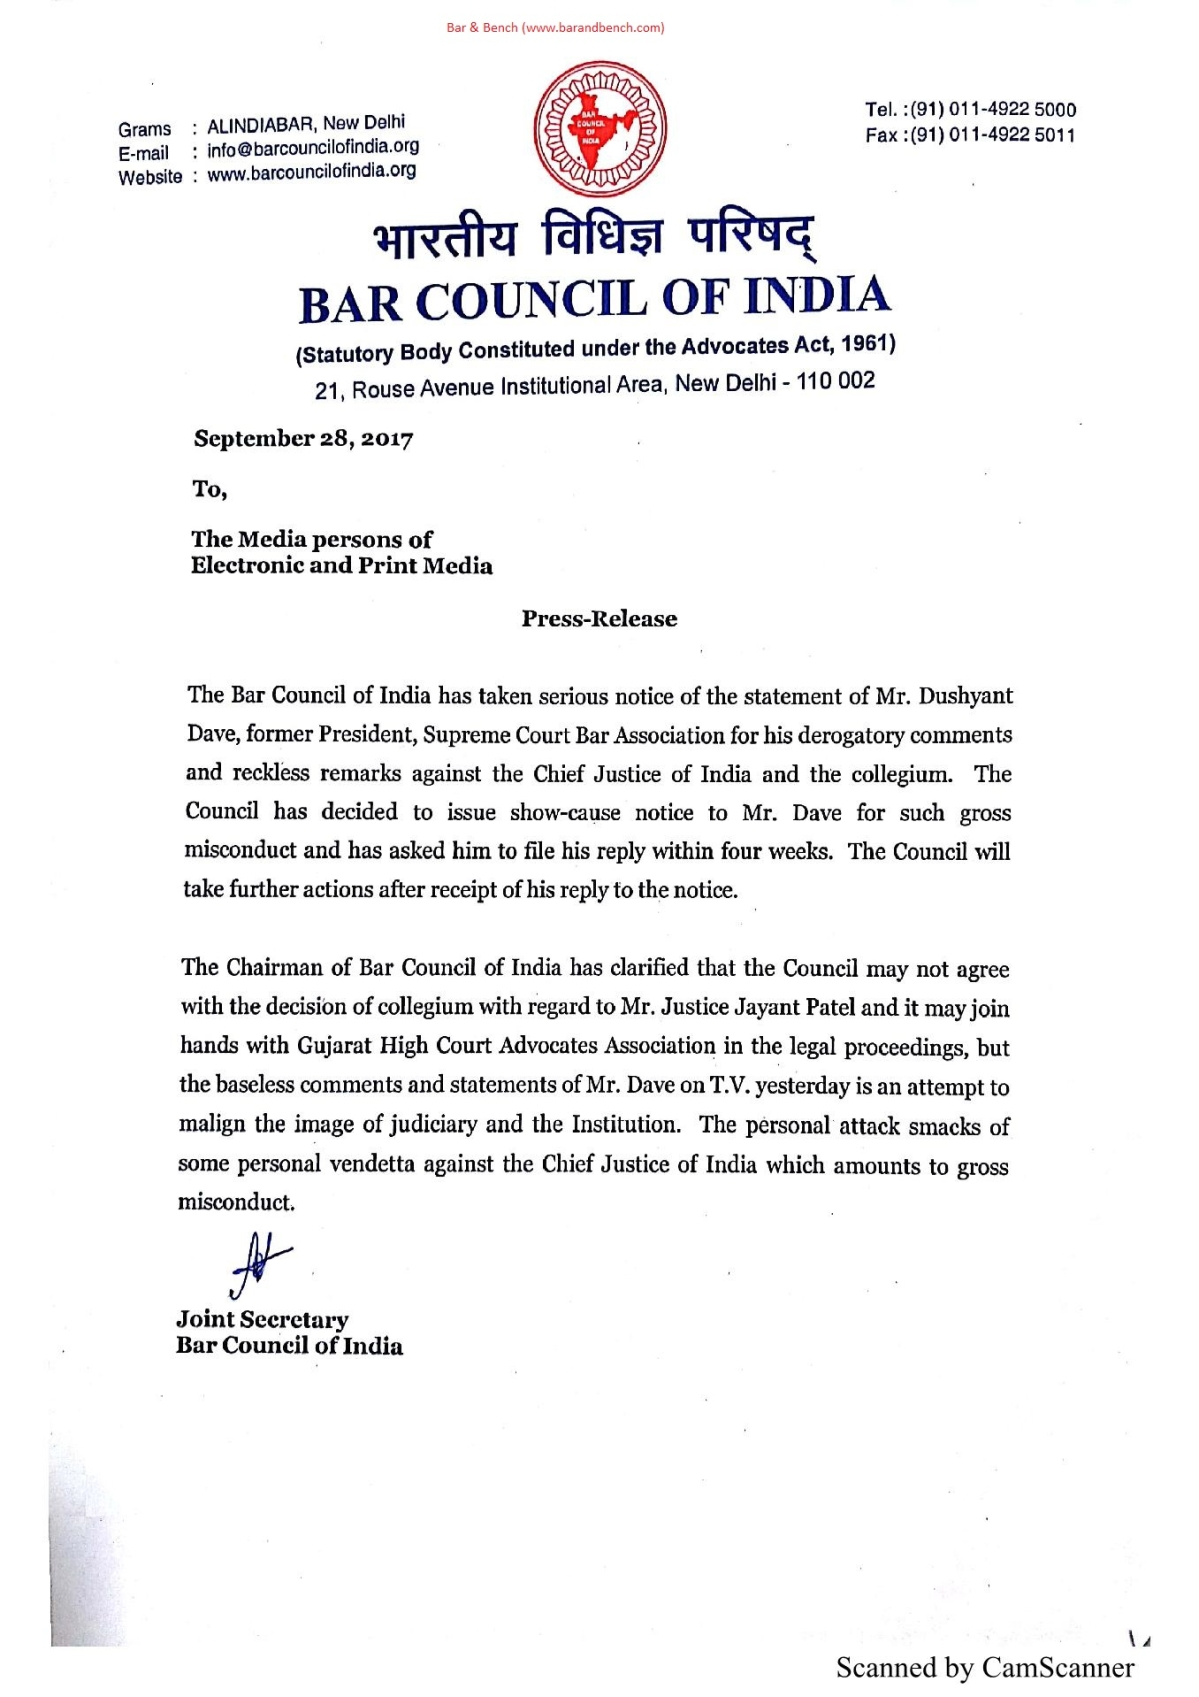 BCI issues show cause notice to Dushyant Dave for remarks against CJI Dipak Misra, Collegium